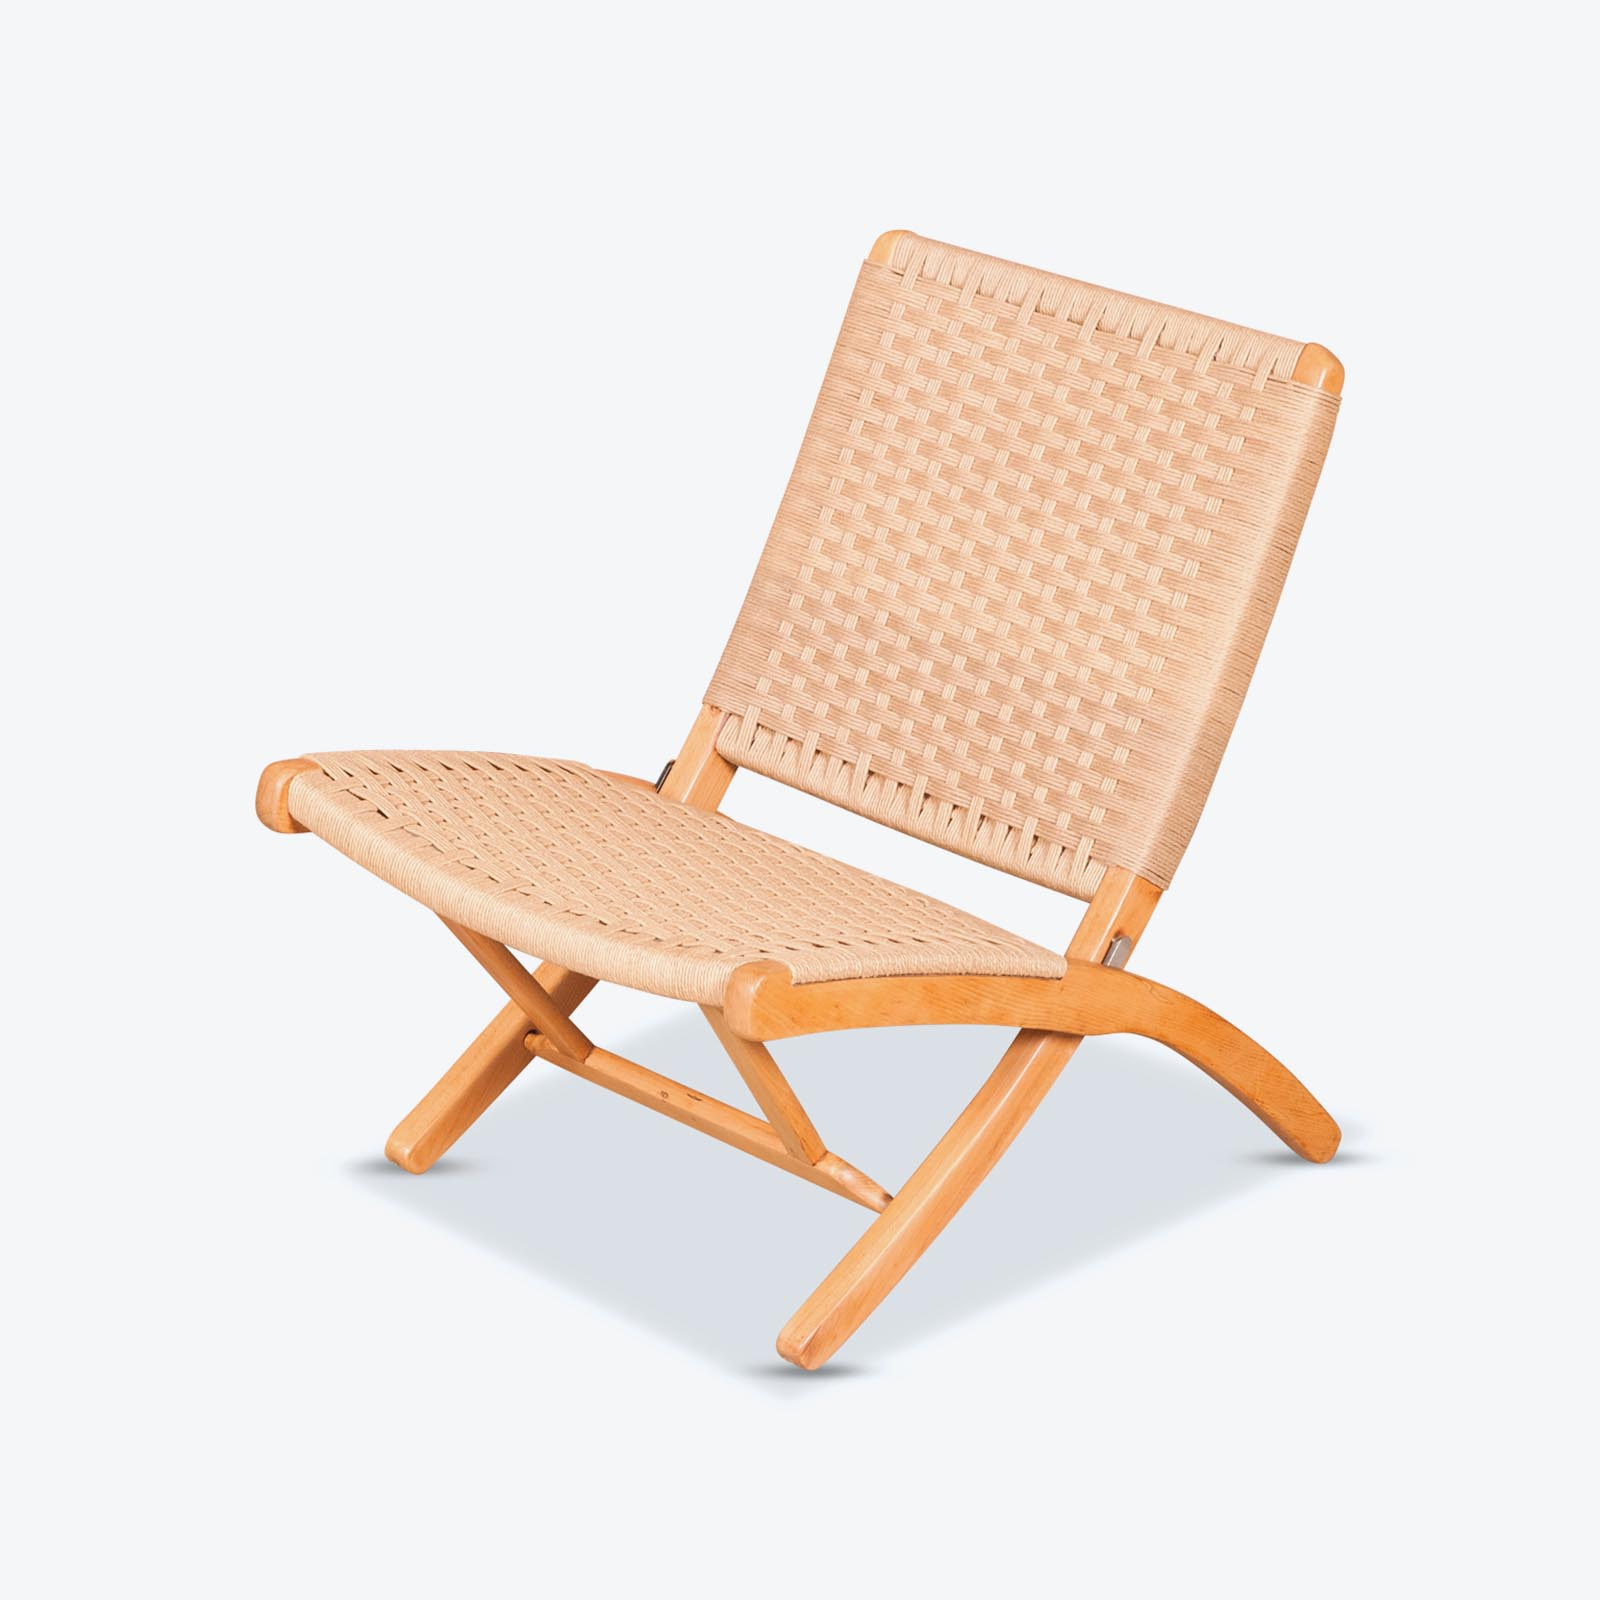 Japanese Chair Japanese Folding Chair In The Style Of Hans Wegner With New Papercord 1960s Japan